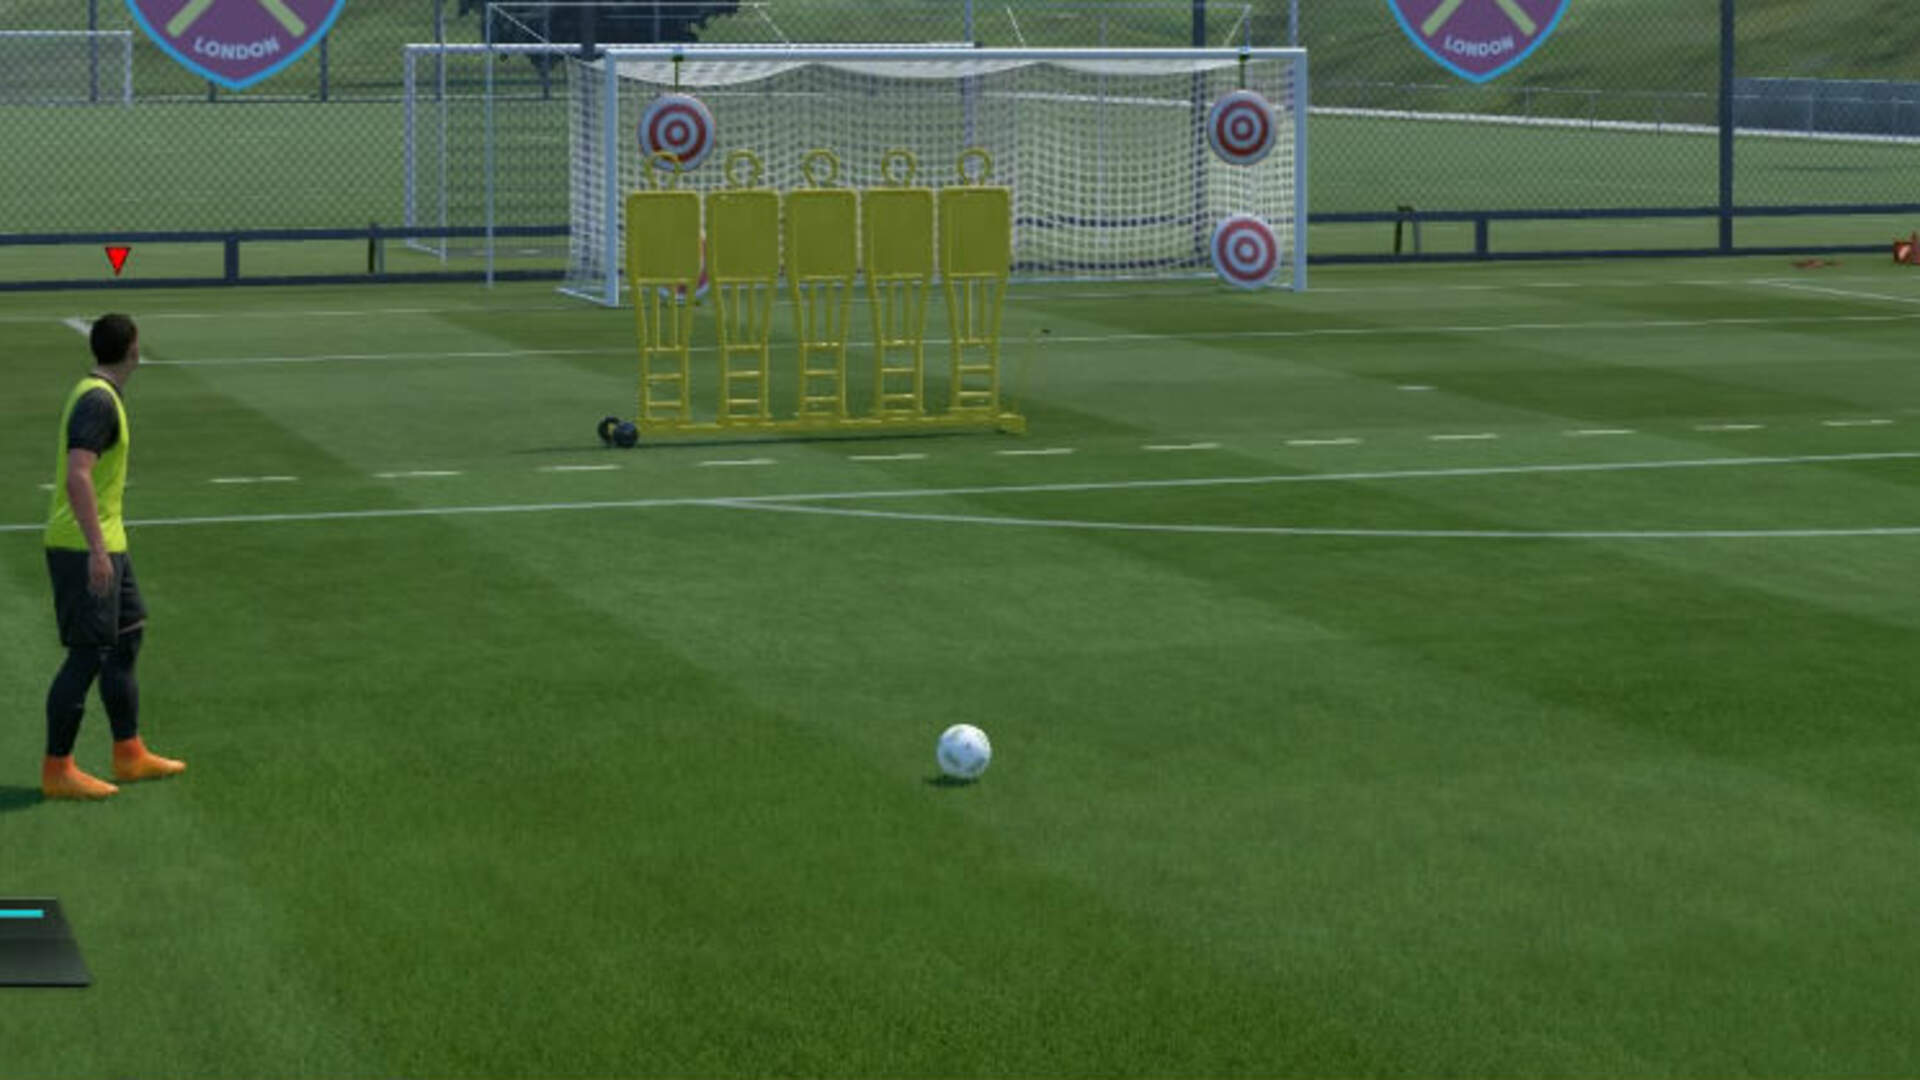 FIFA 17: How to Score on a Free Kick